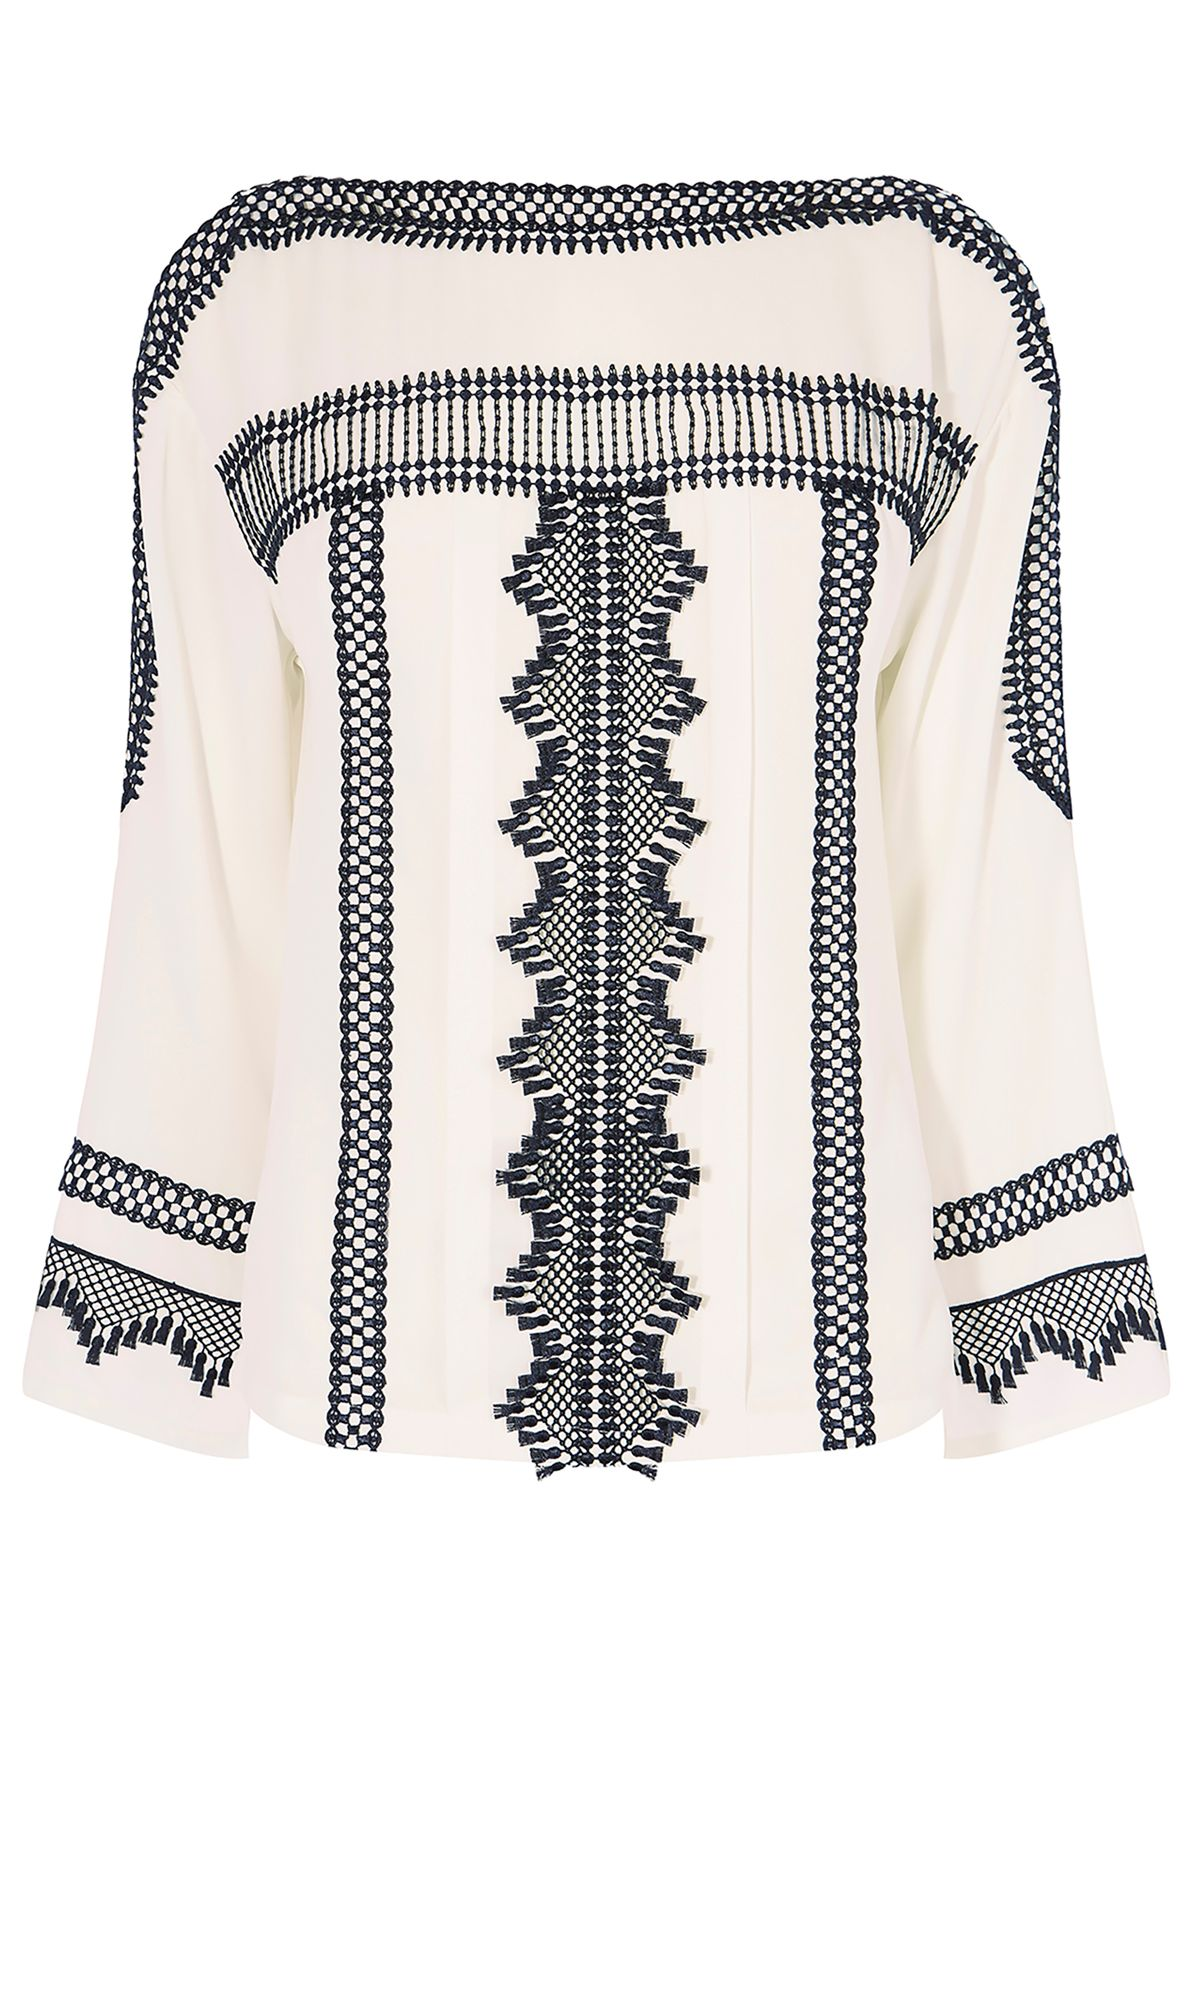 Karen Millen Lace Boho Blouse, Multi-Coloured